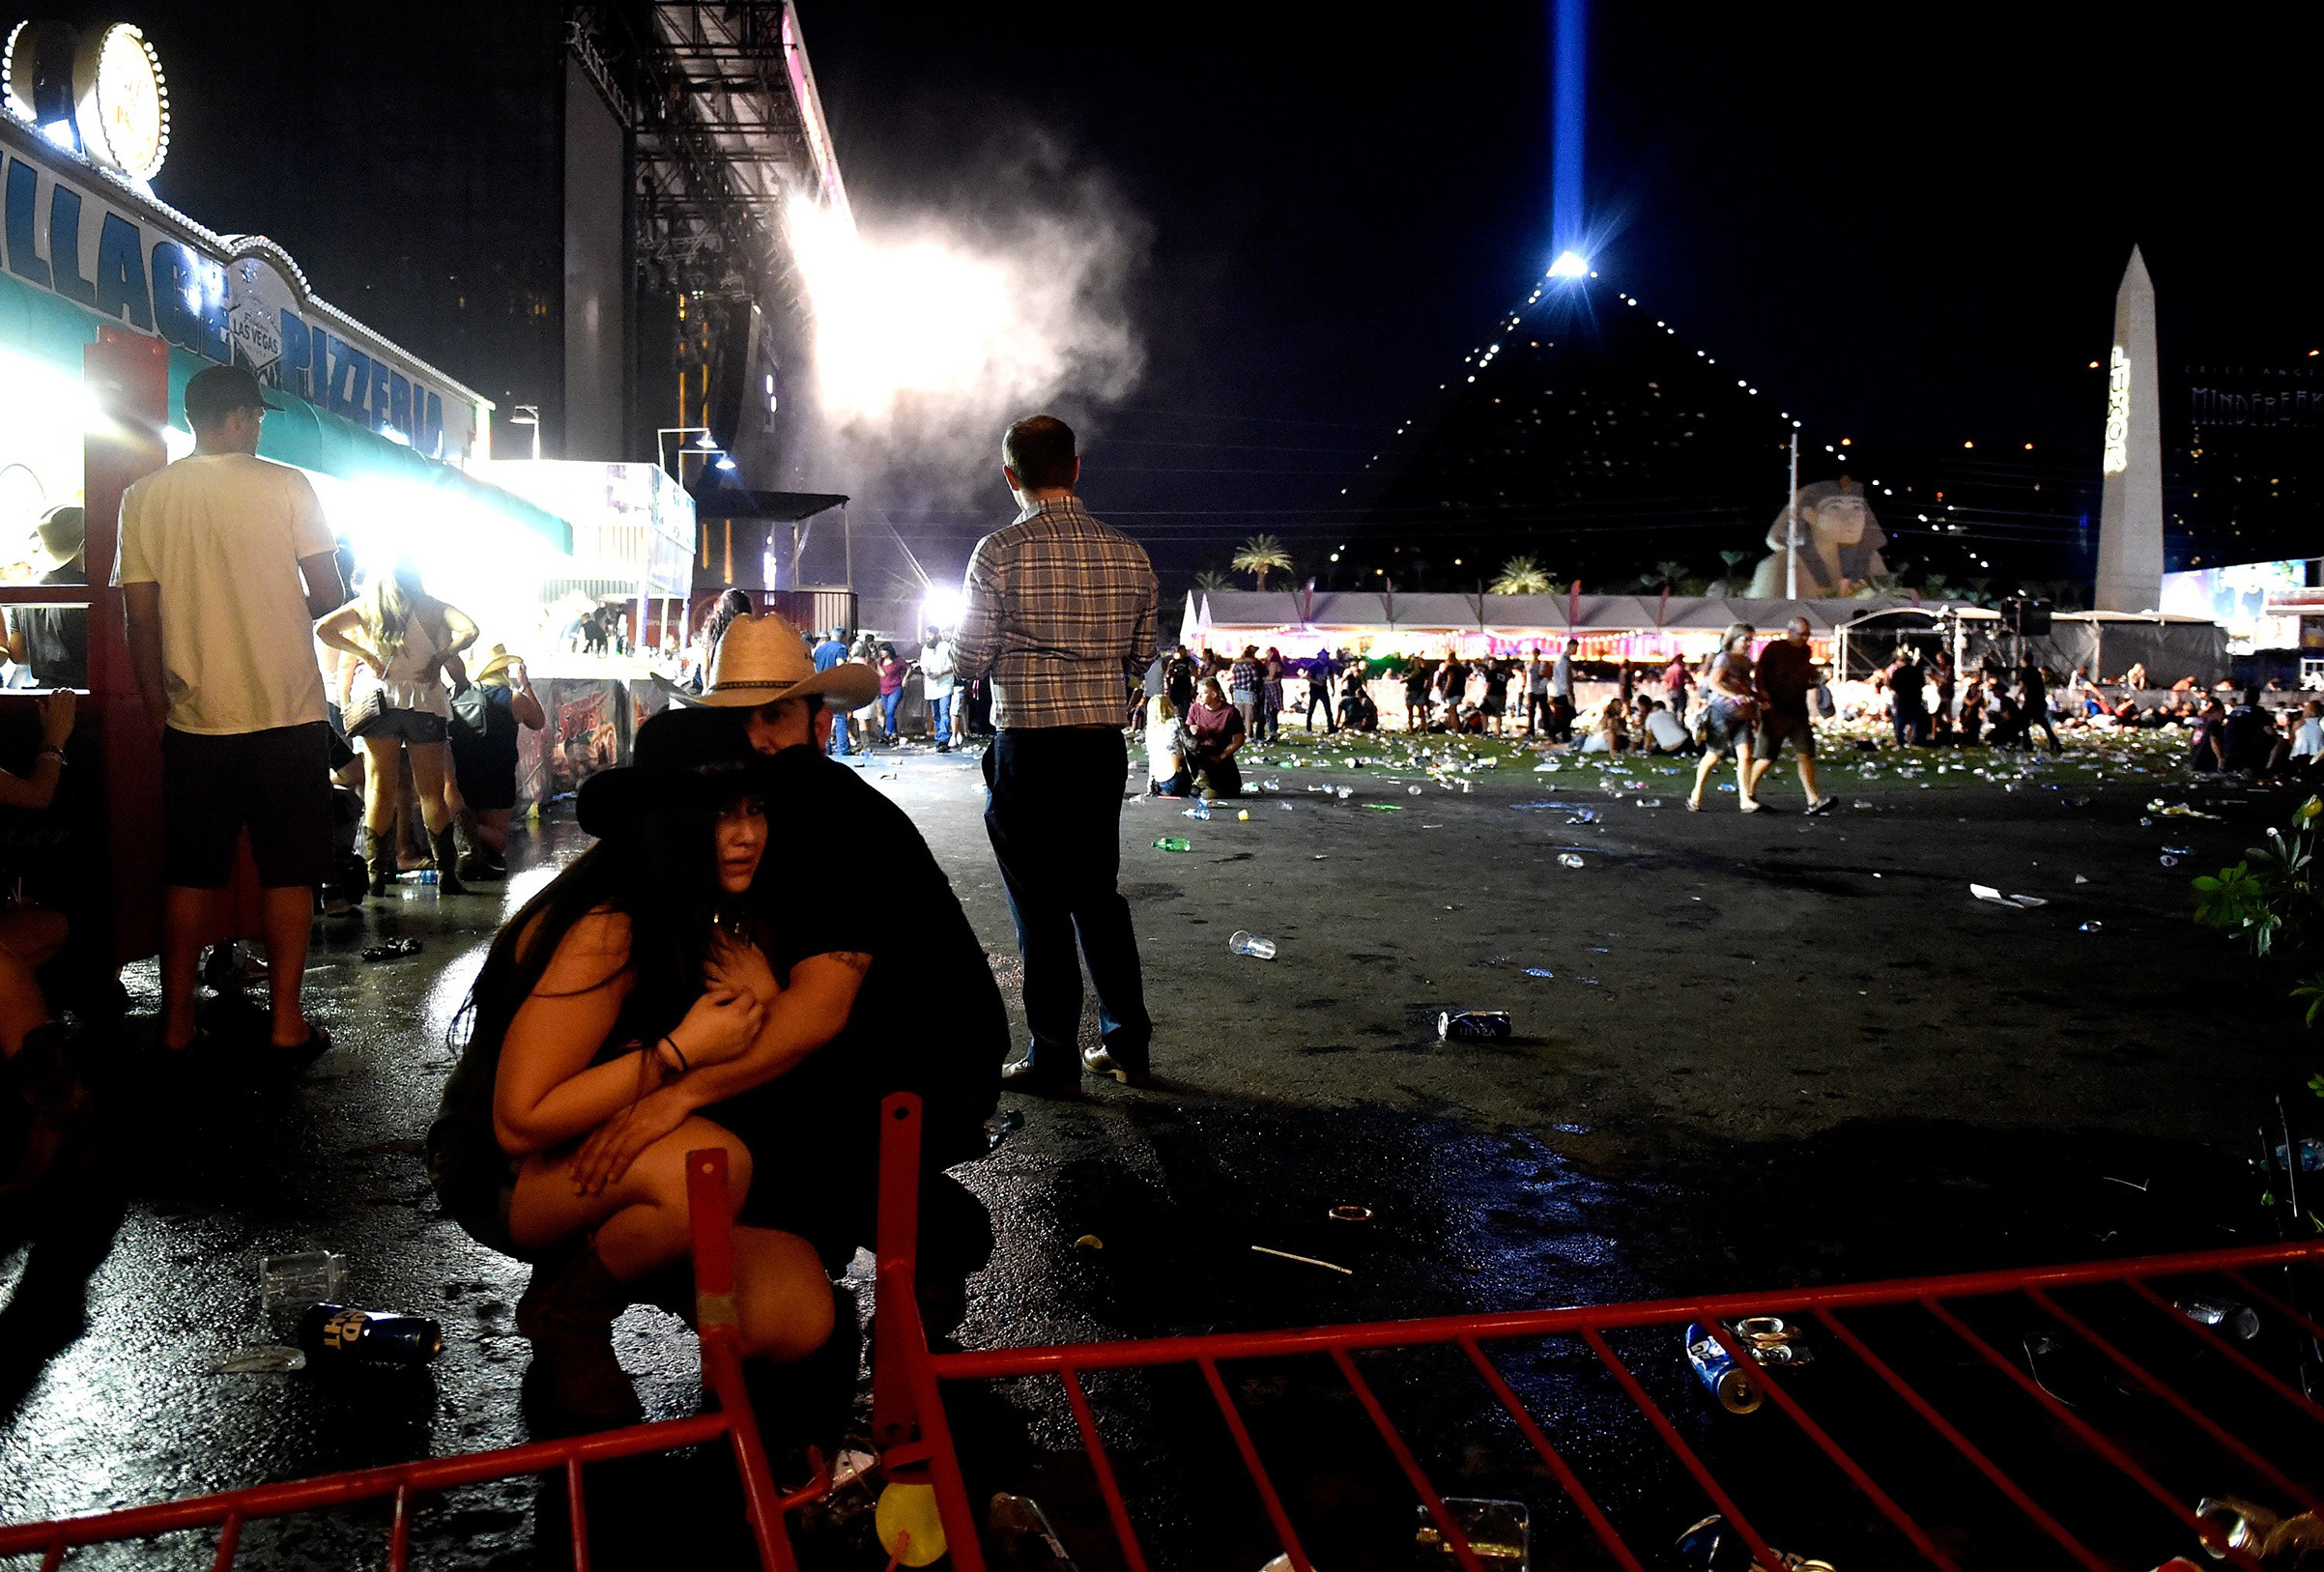 A couple takes cover at the Route 91 Harvest country music festival after apparent gun fire was heard on Oct. 1, 2017 in Las Vegas.